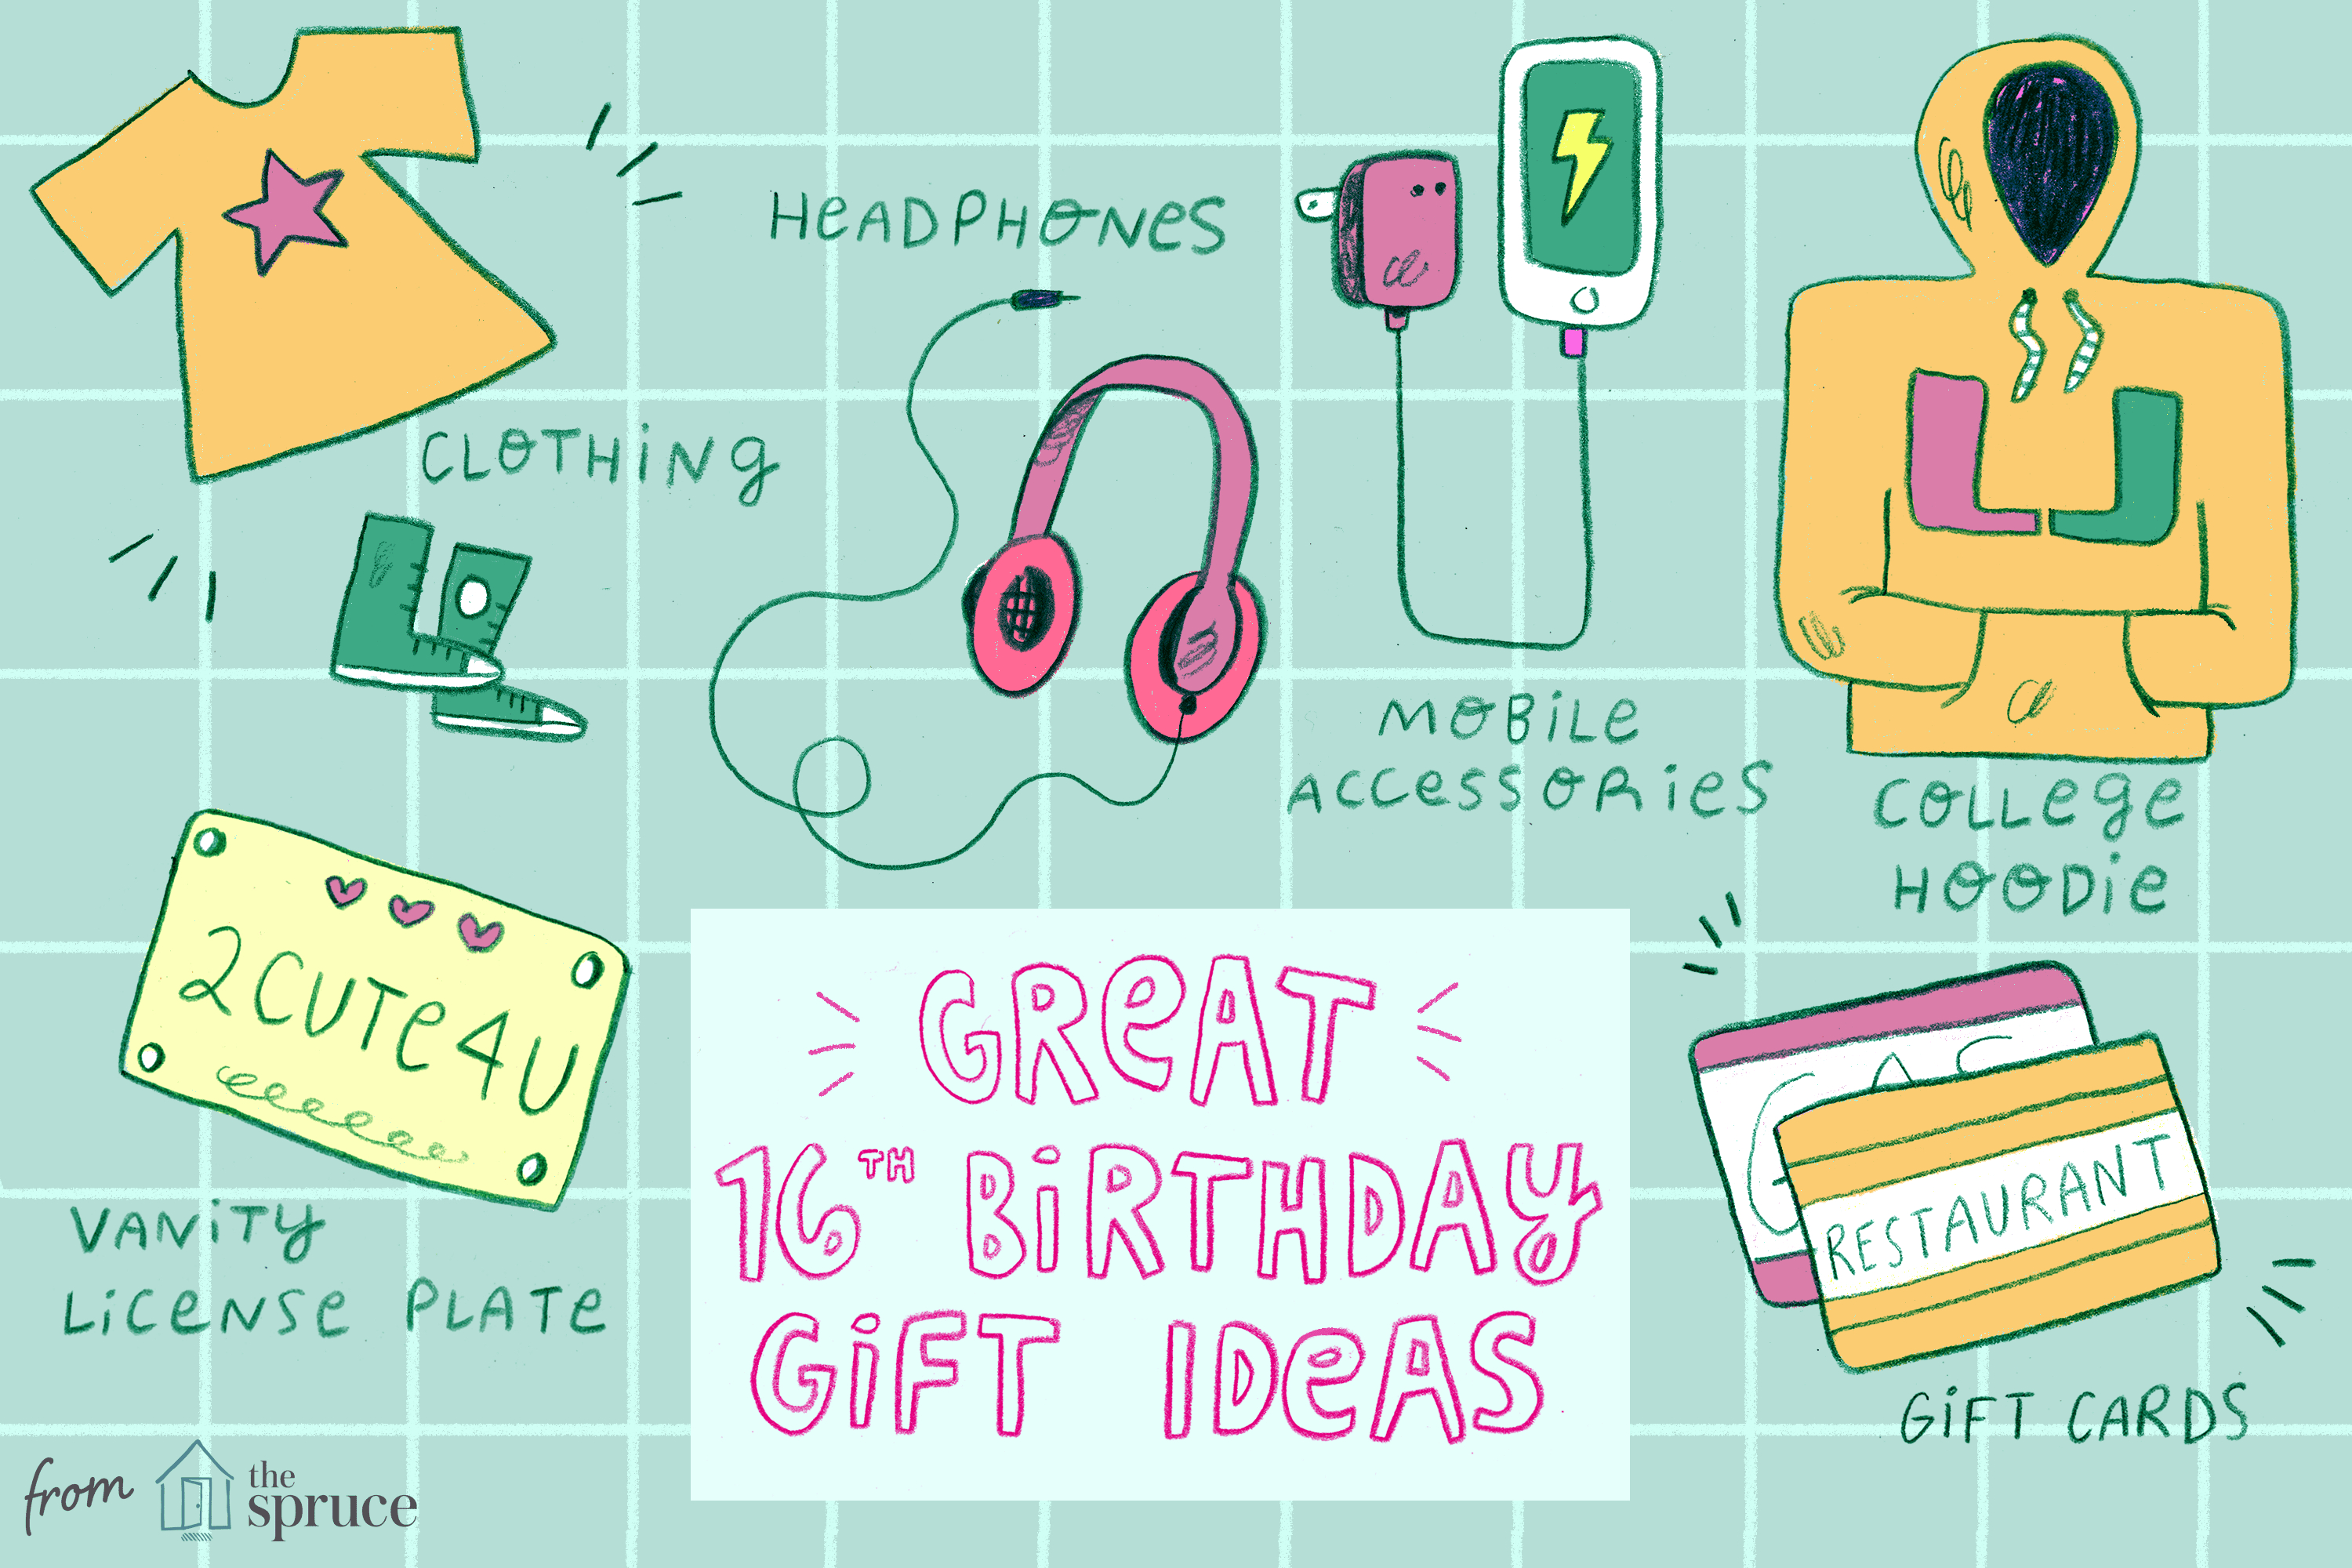 Cute Birthday Card Ideas For Girlfriend 20 Awesome Ideas For 16th Birthday Gifts